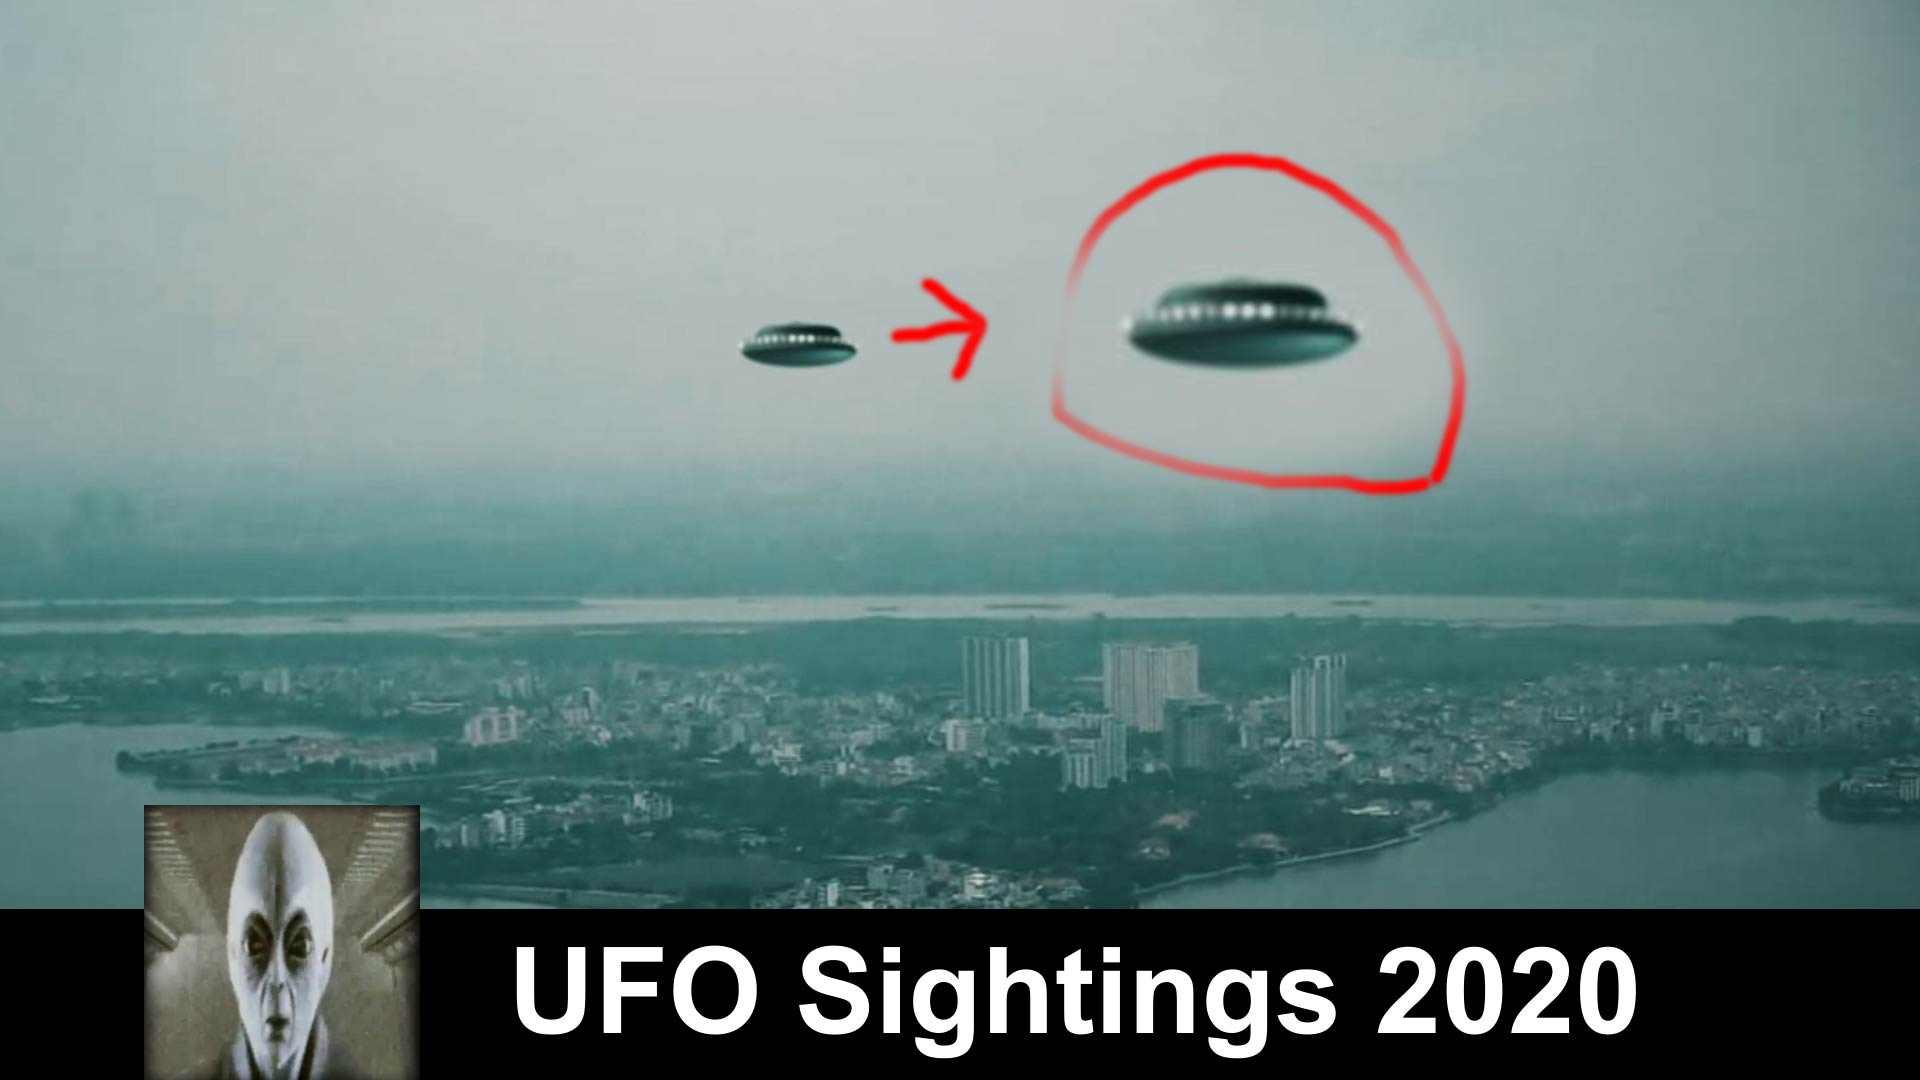 UFO Sightings 2020 Unknown Objects In Our SKY